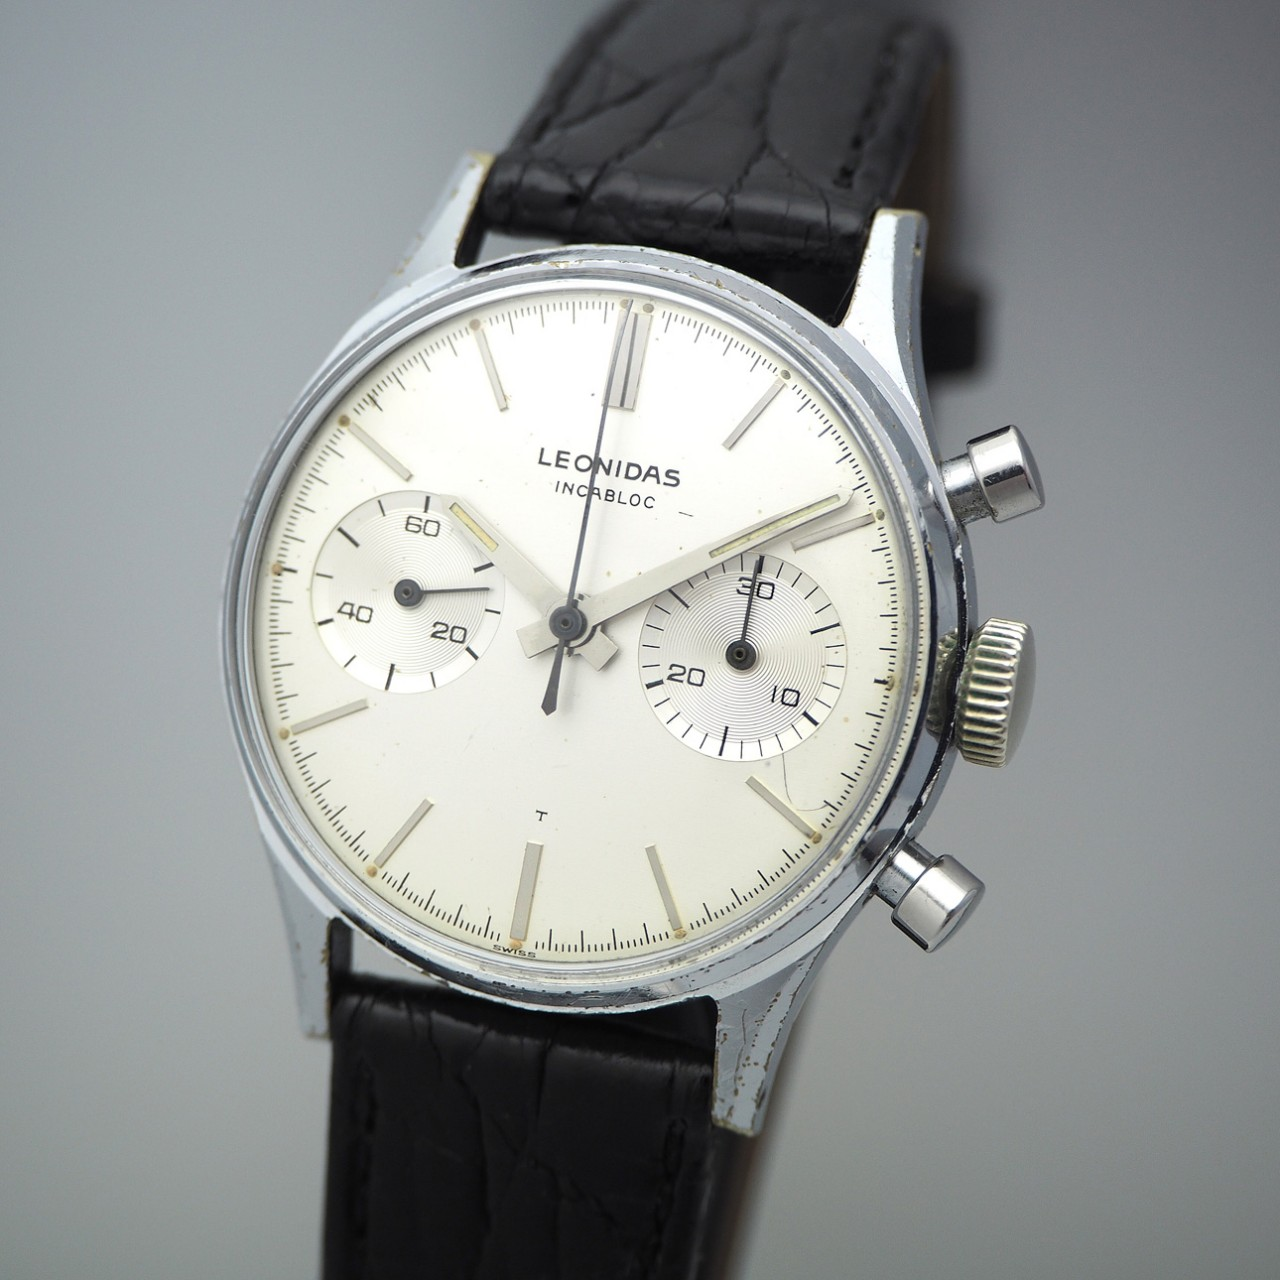 Leonidas Vintage Chronograph 2-Register, 248, 1960